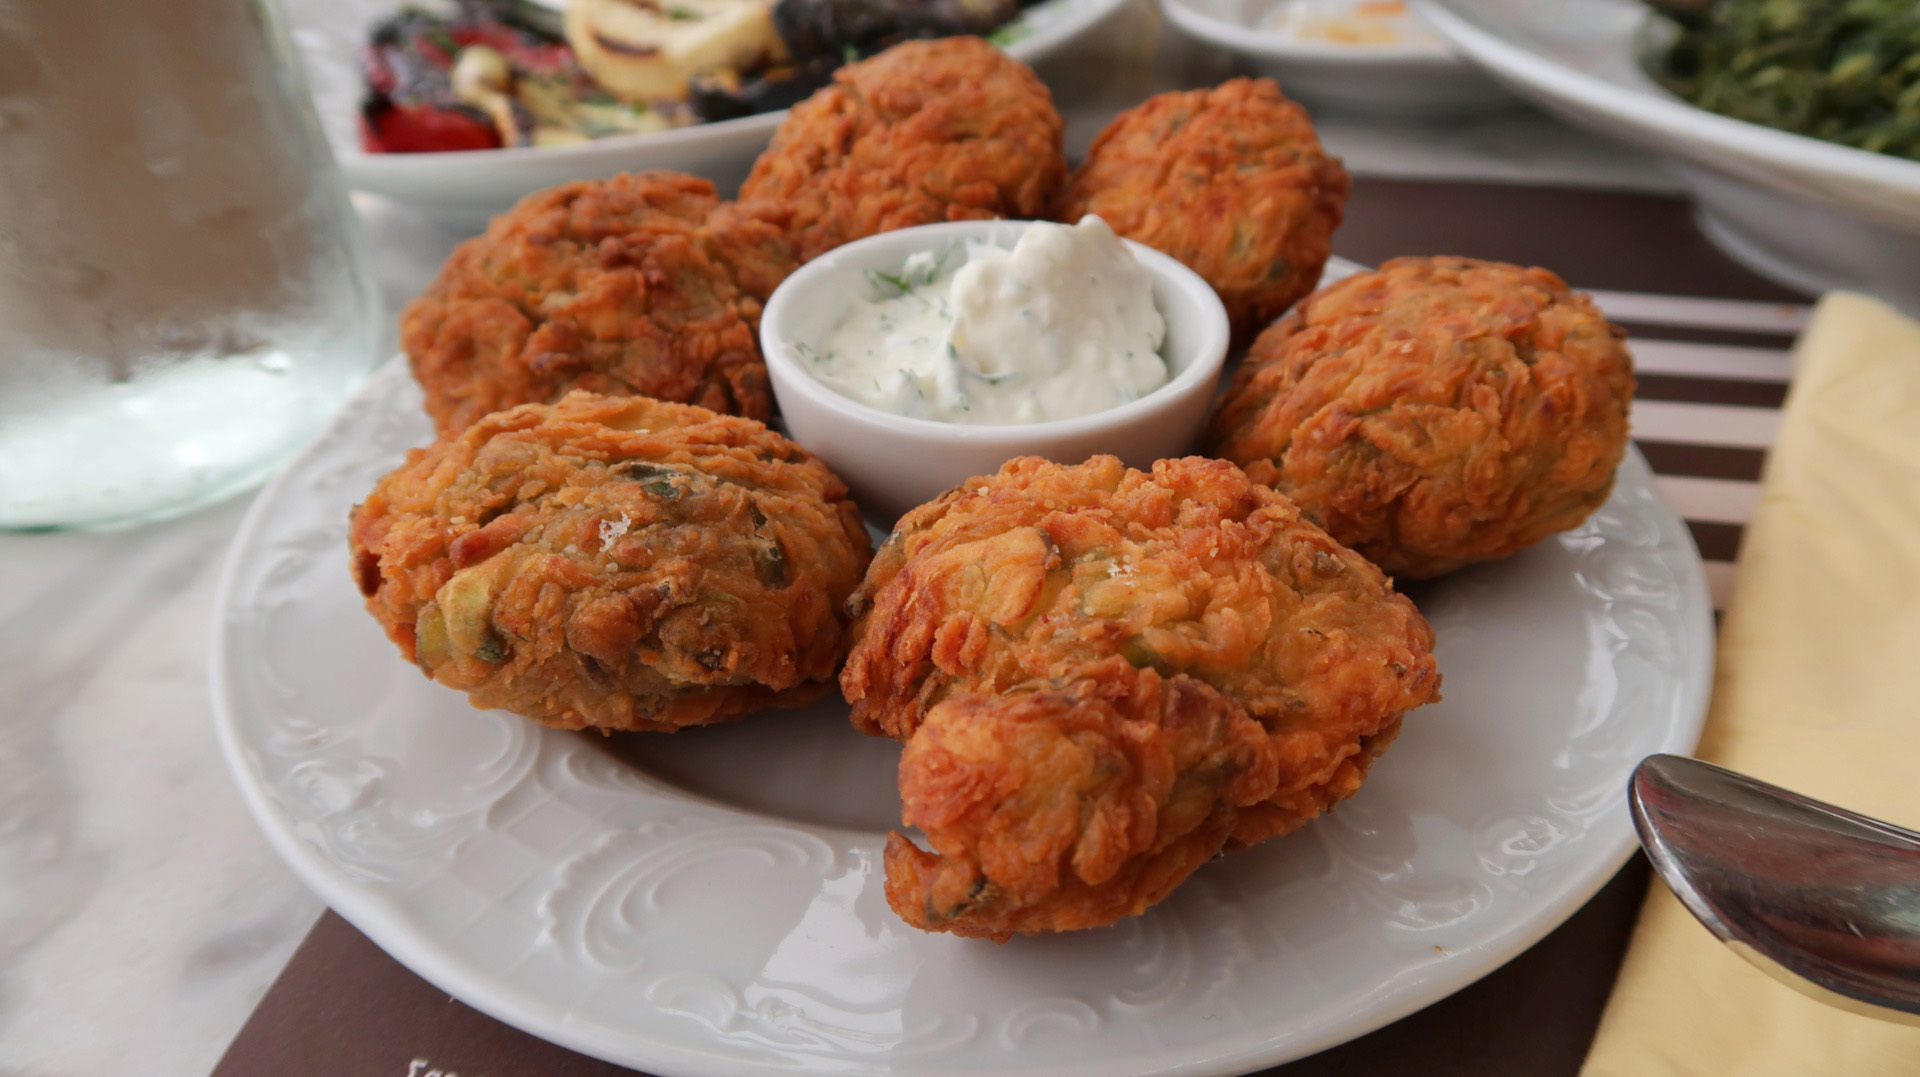 Sway the way andros zucchini croquettes1